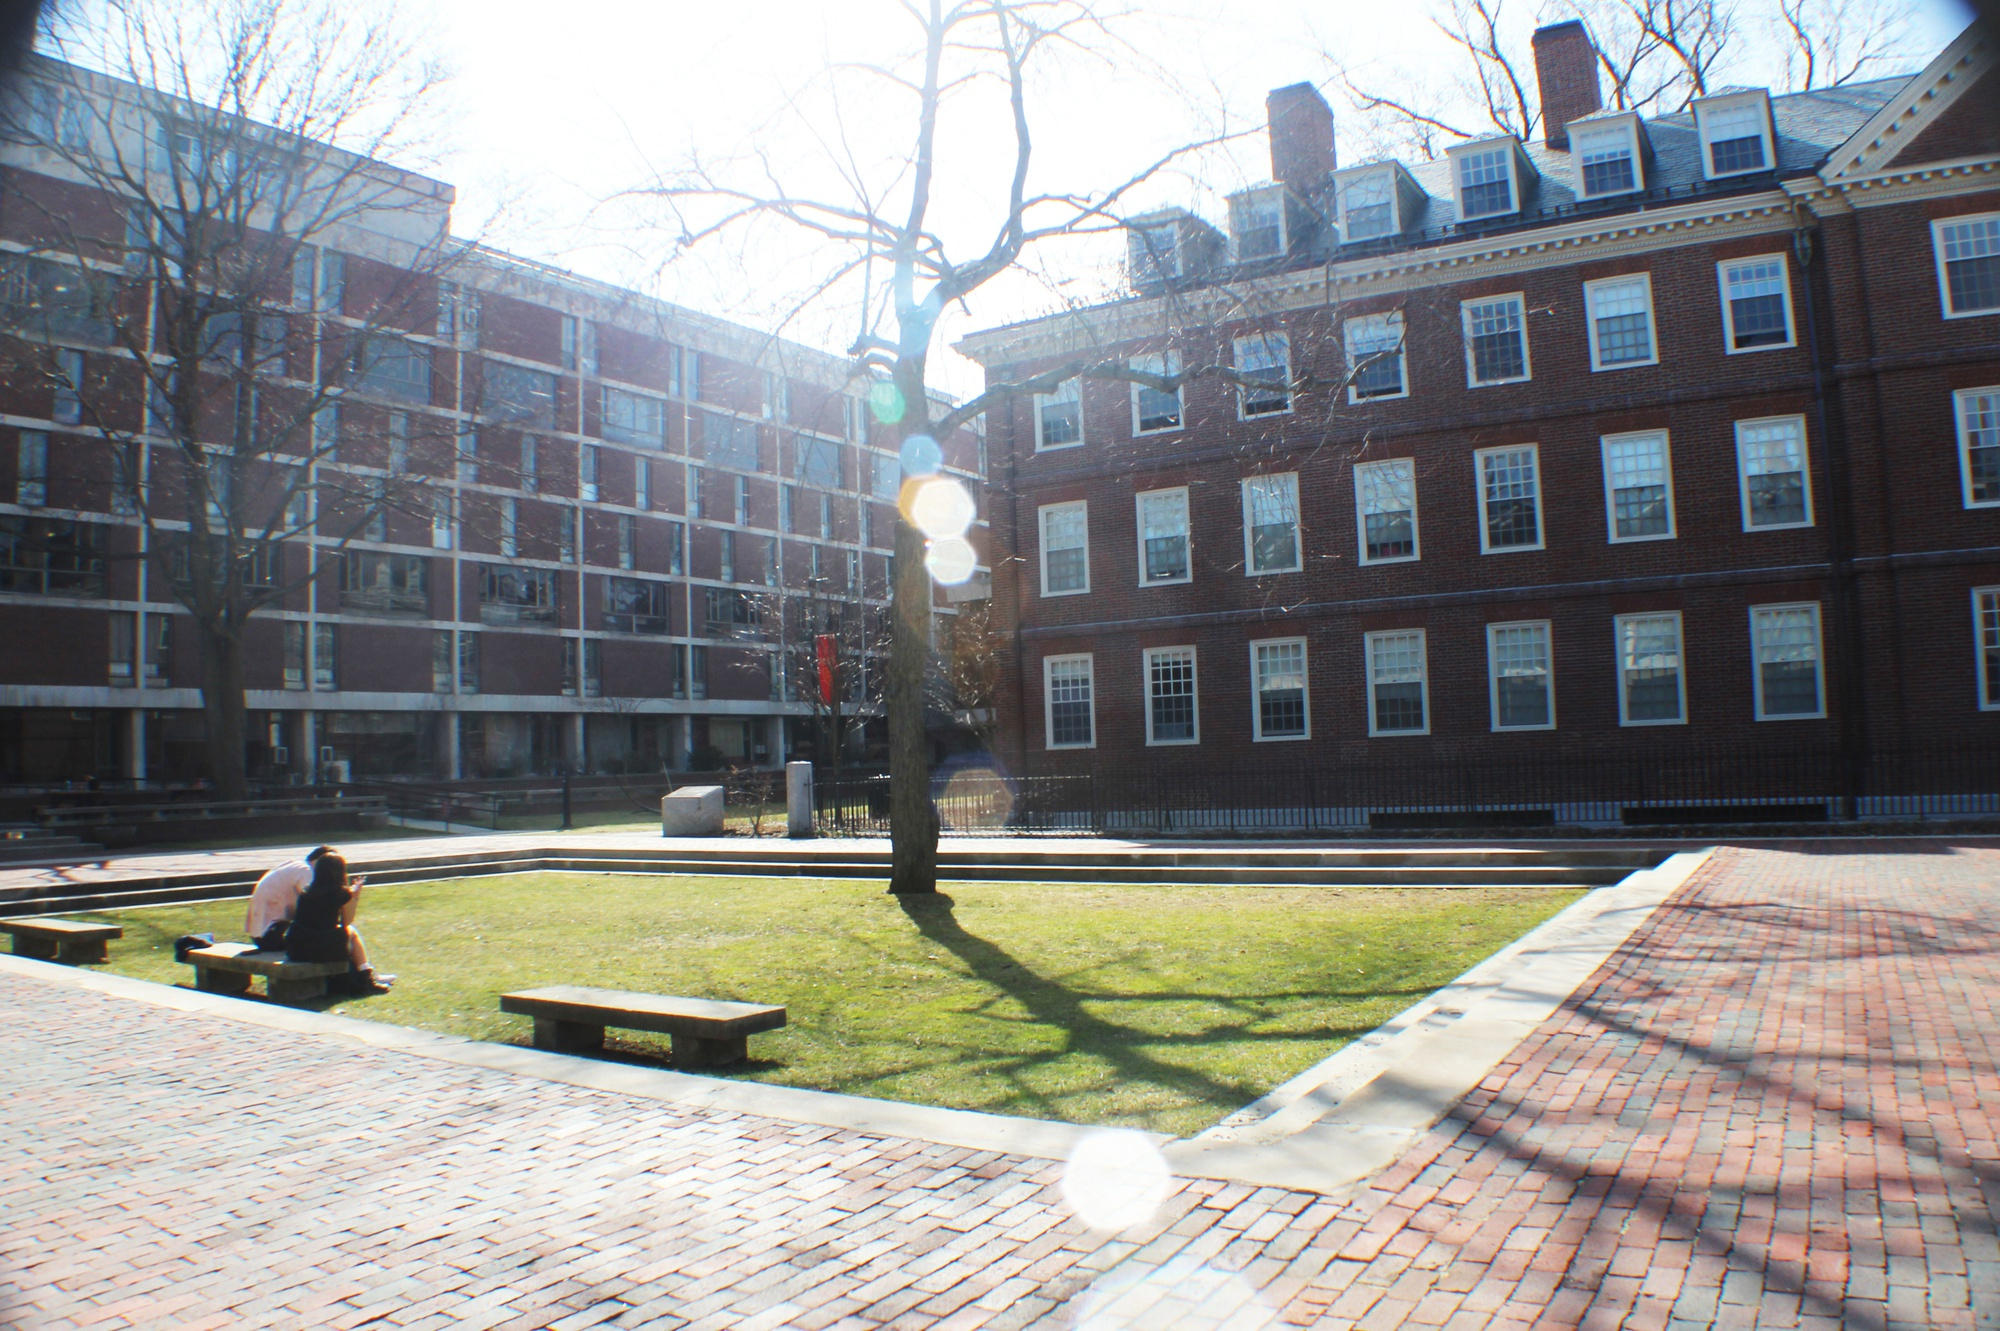 Quincy House's courtyard in the sunshine.